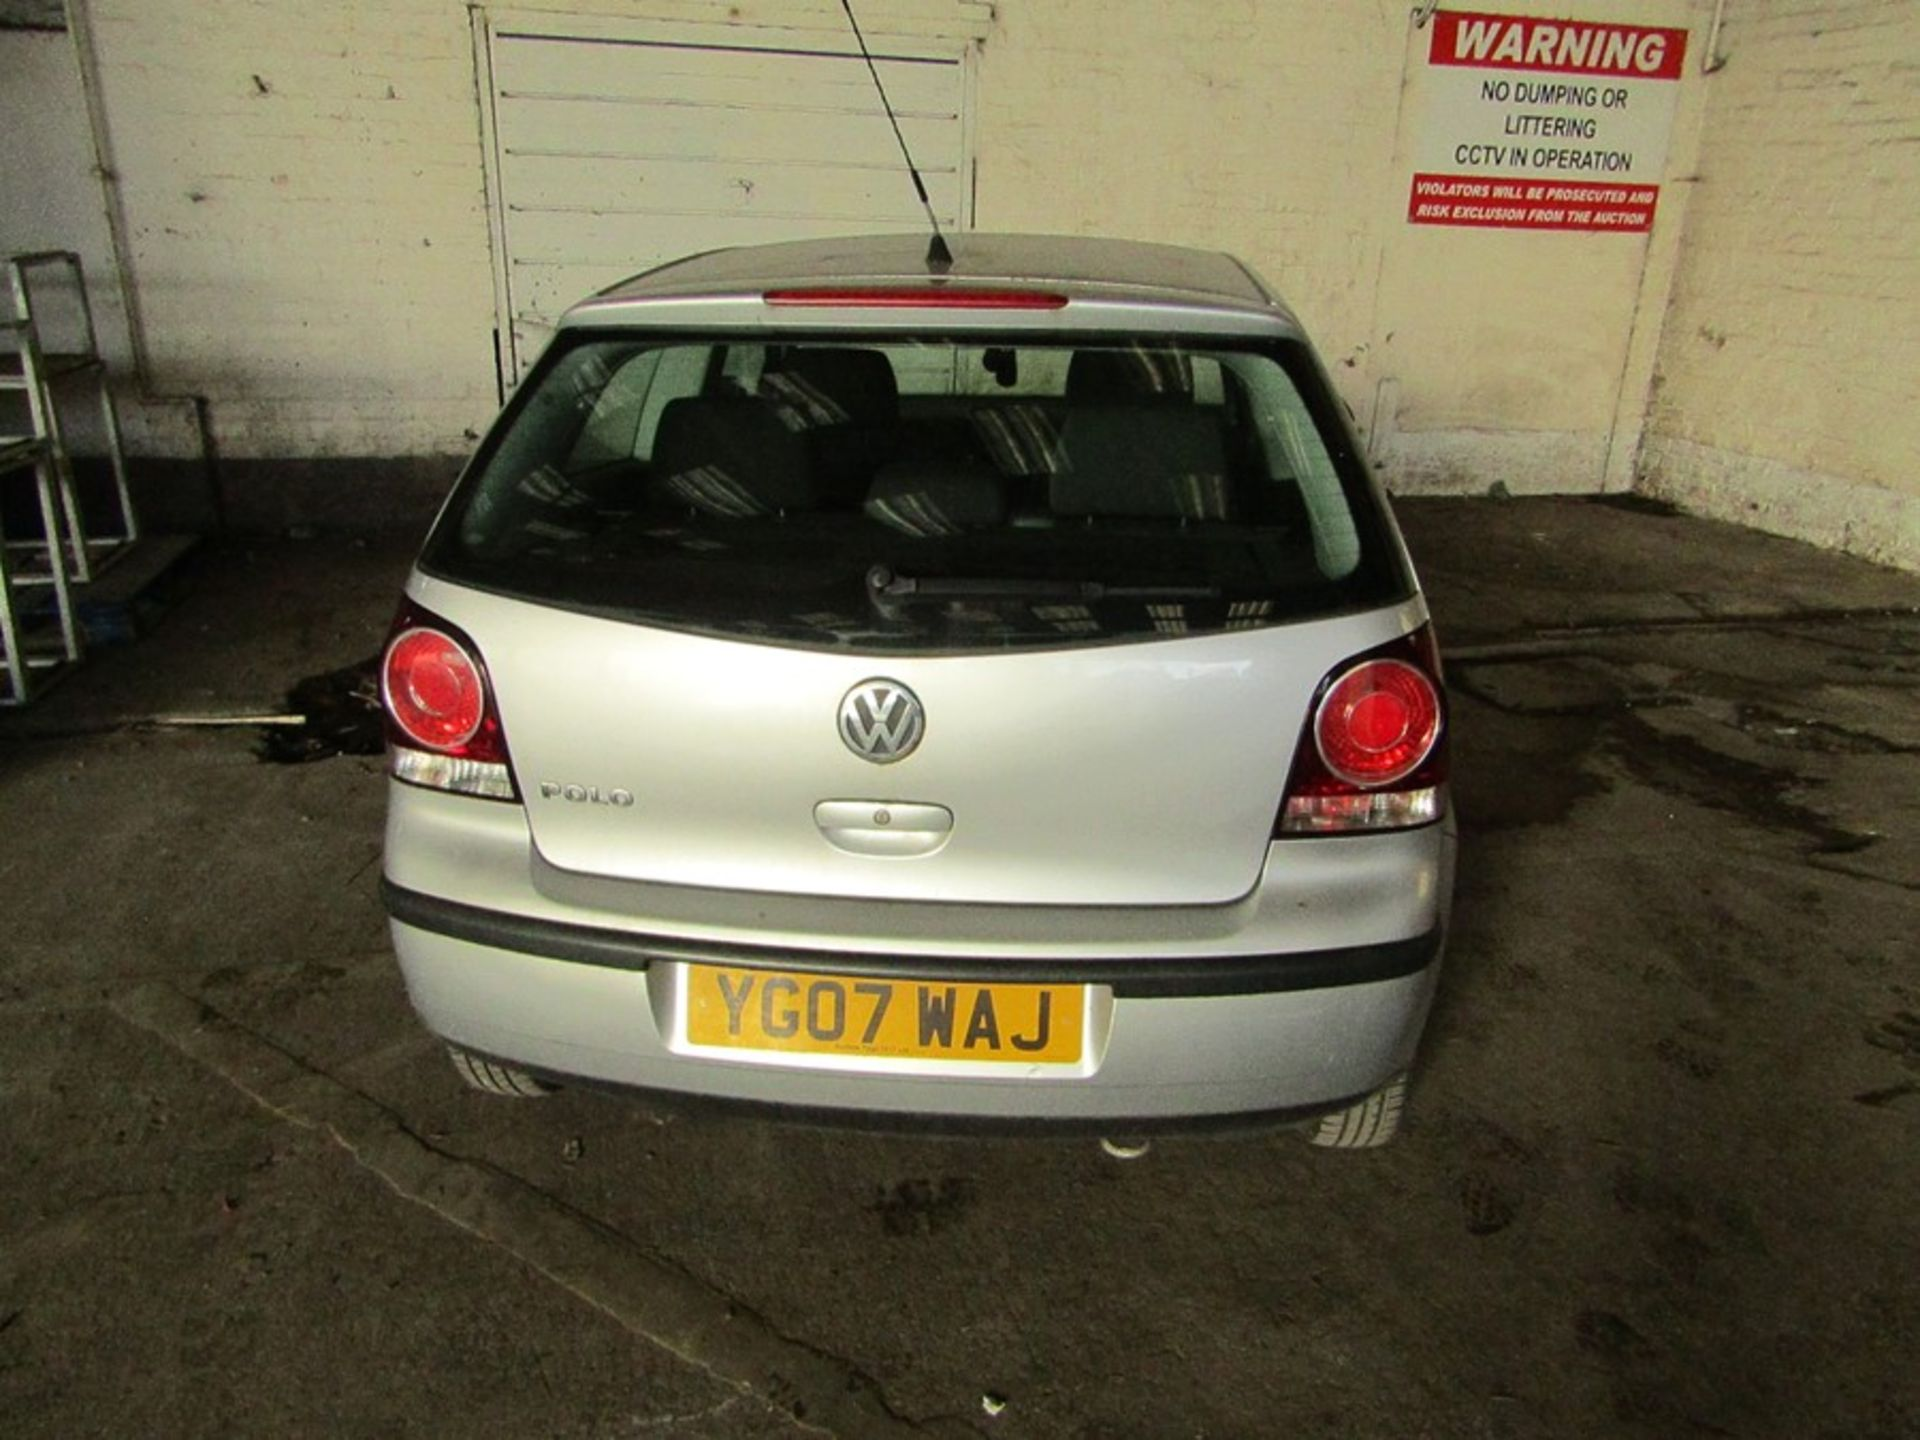 2007 Volkswagen Polo 1.2L hatchback, starts and drives 70,294 Miles Failed MOT 12/09/2020 due to; - Image 3 of 9